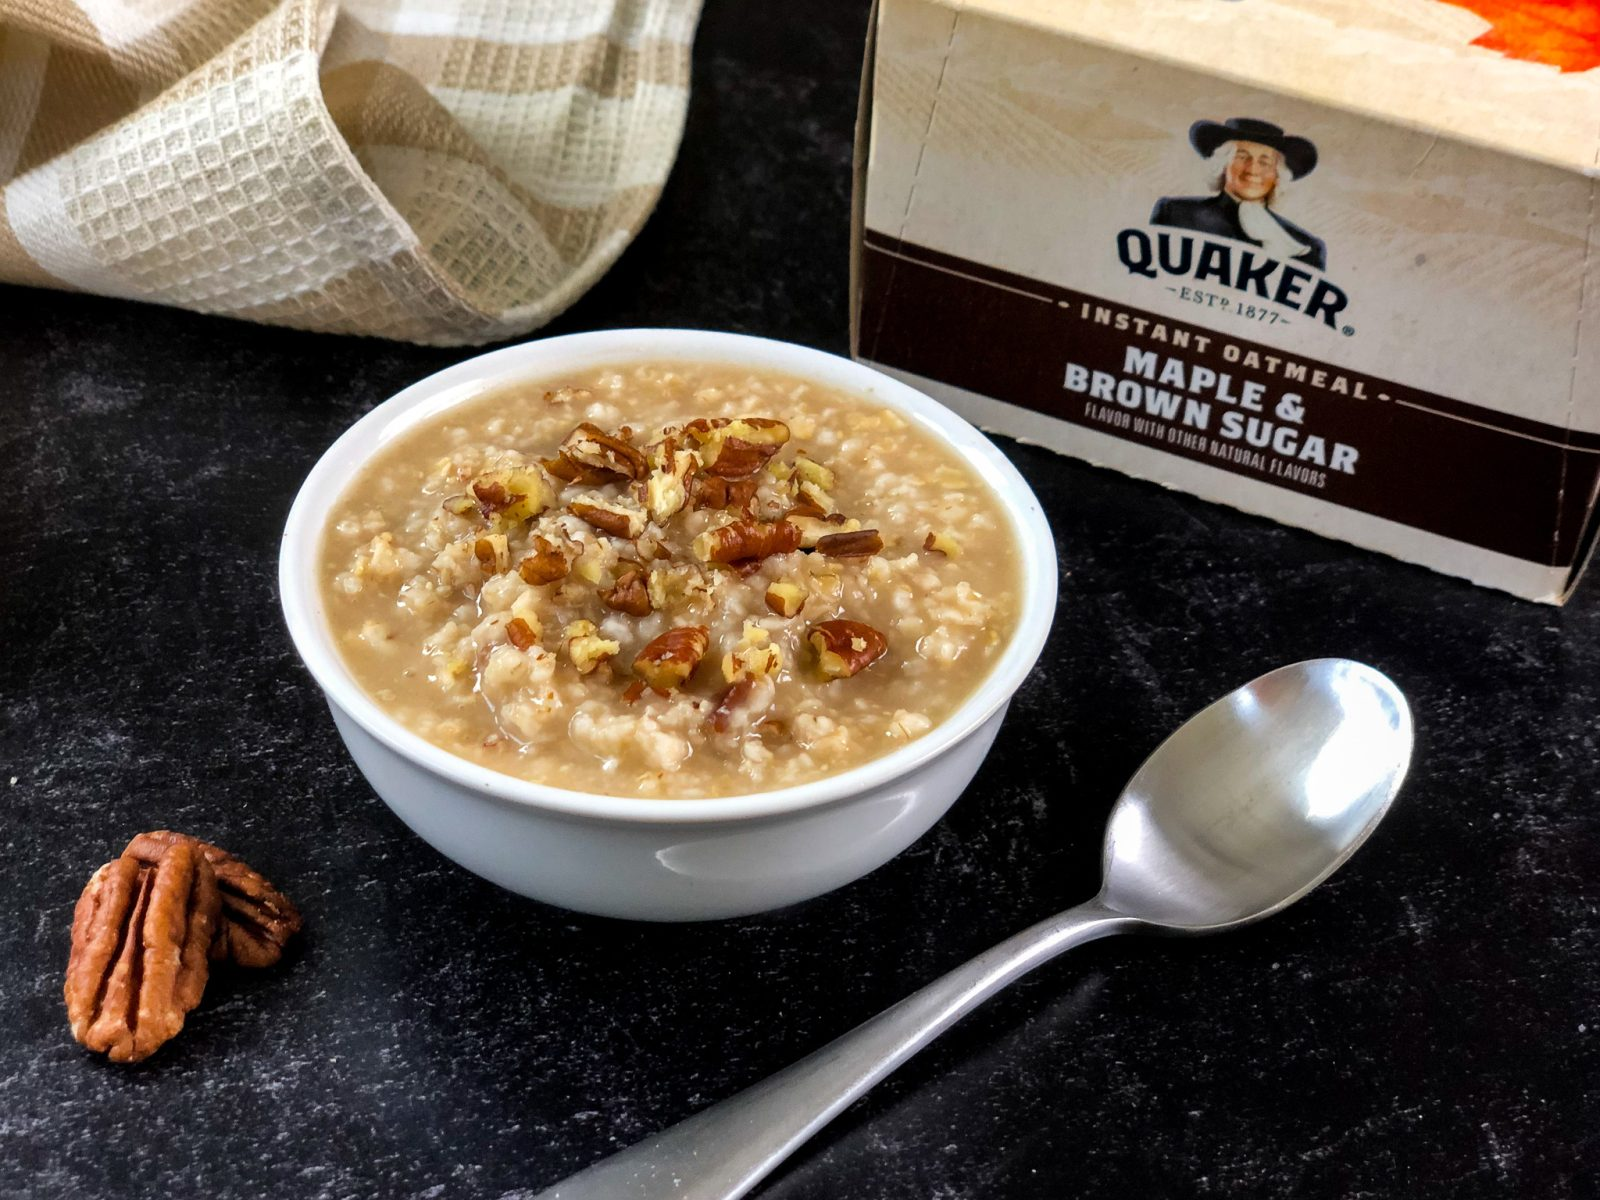 Quaker Instant Oatmeal As Low As 48¢ At Publix on I Heart Publix 1